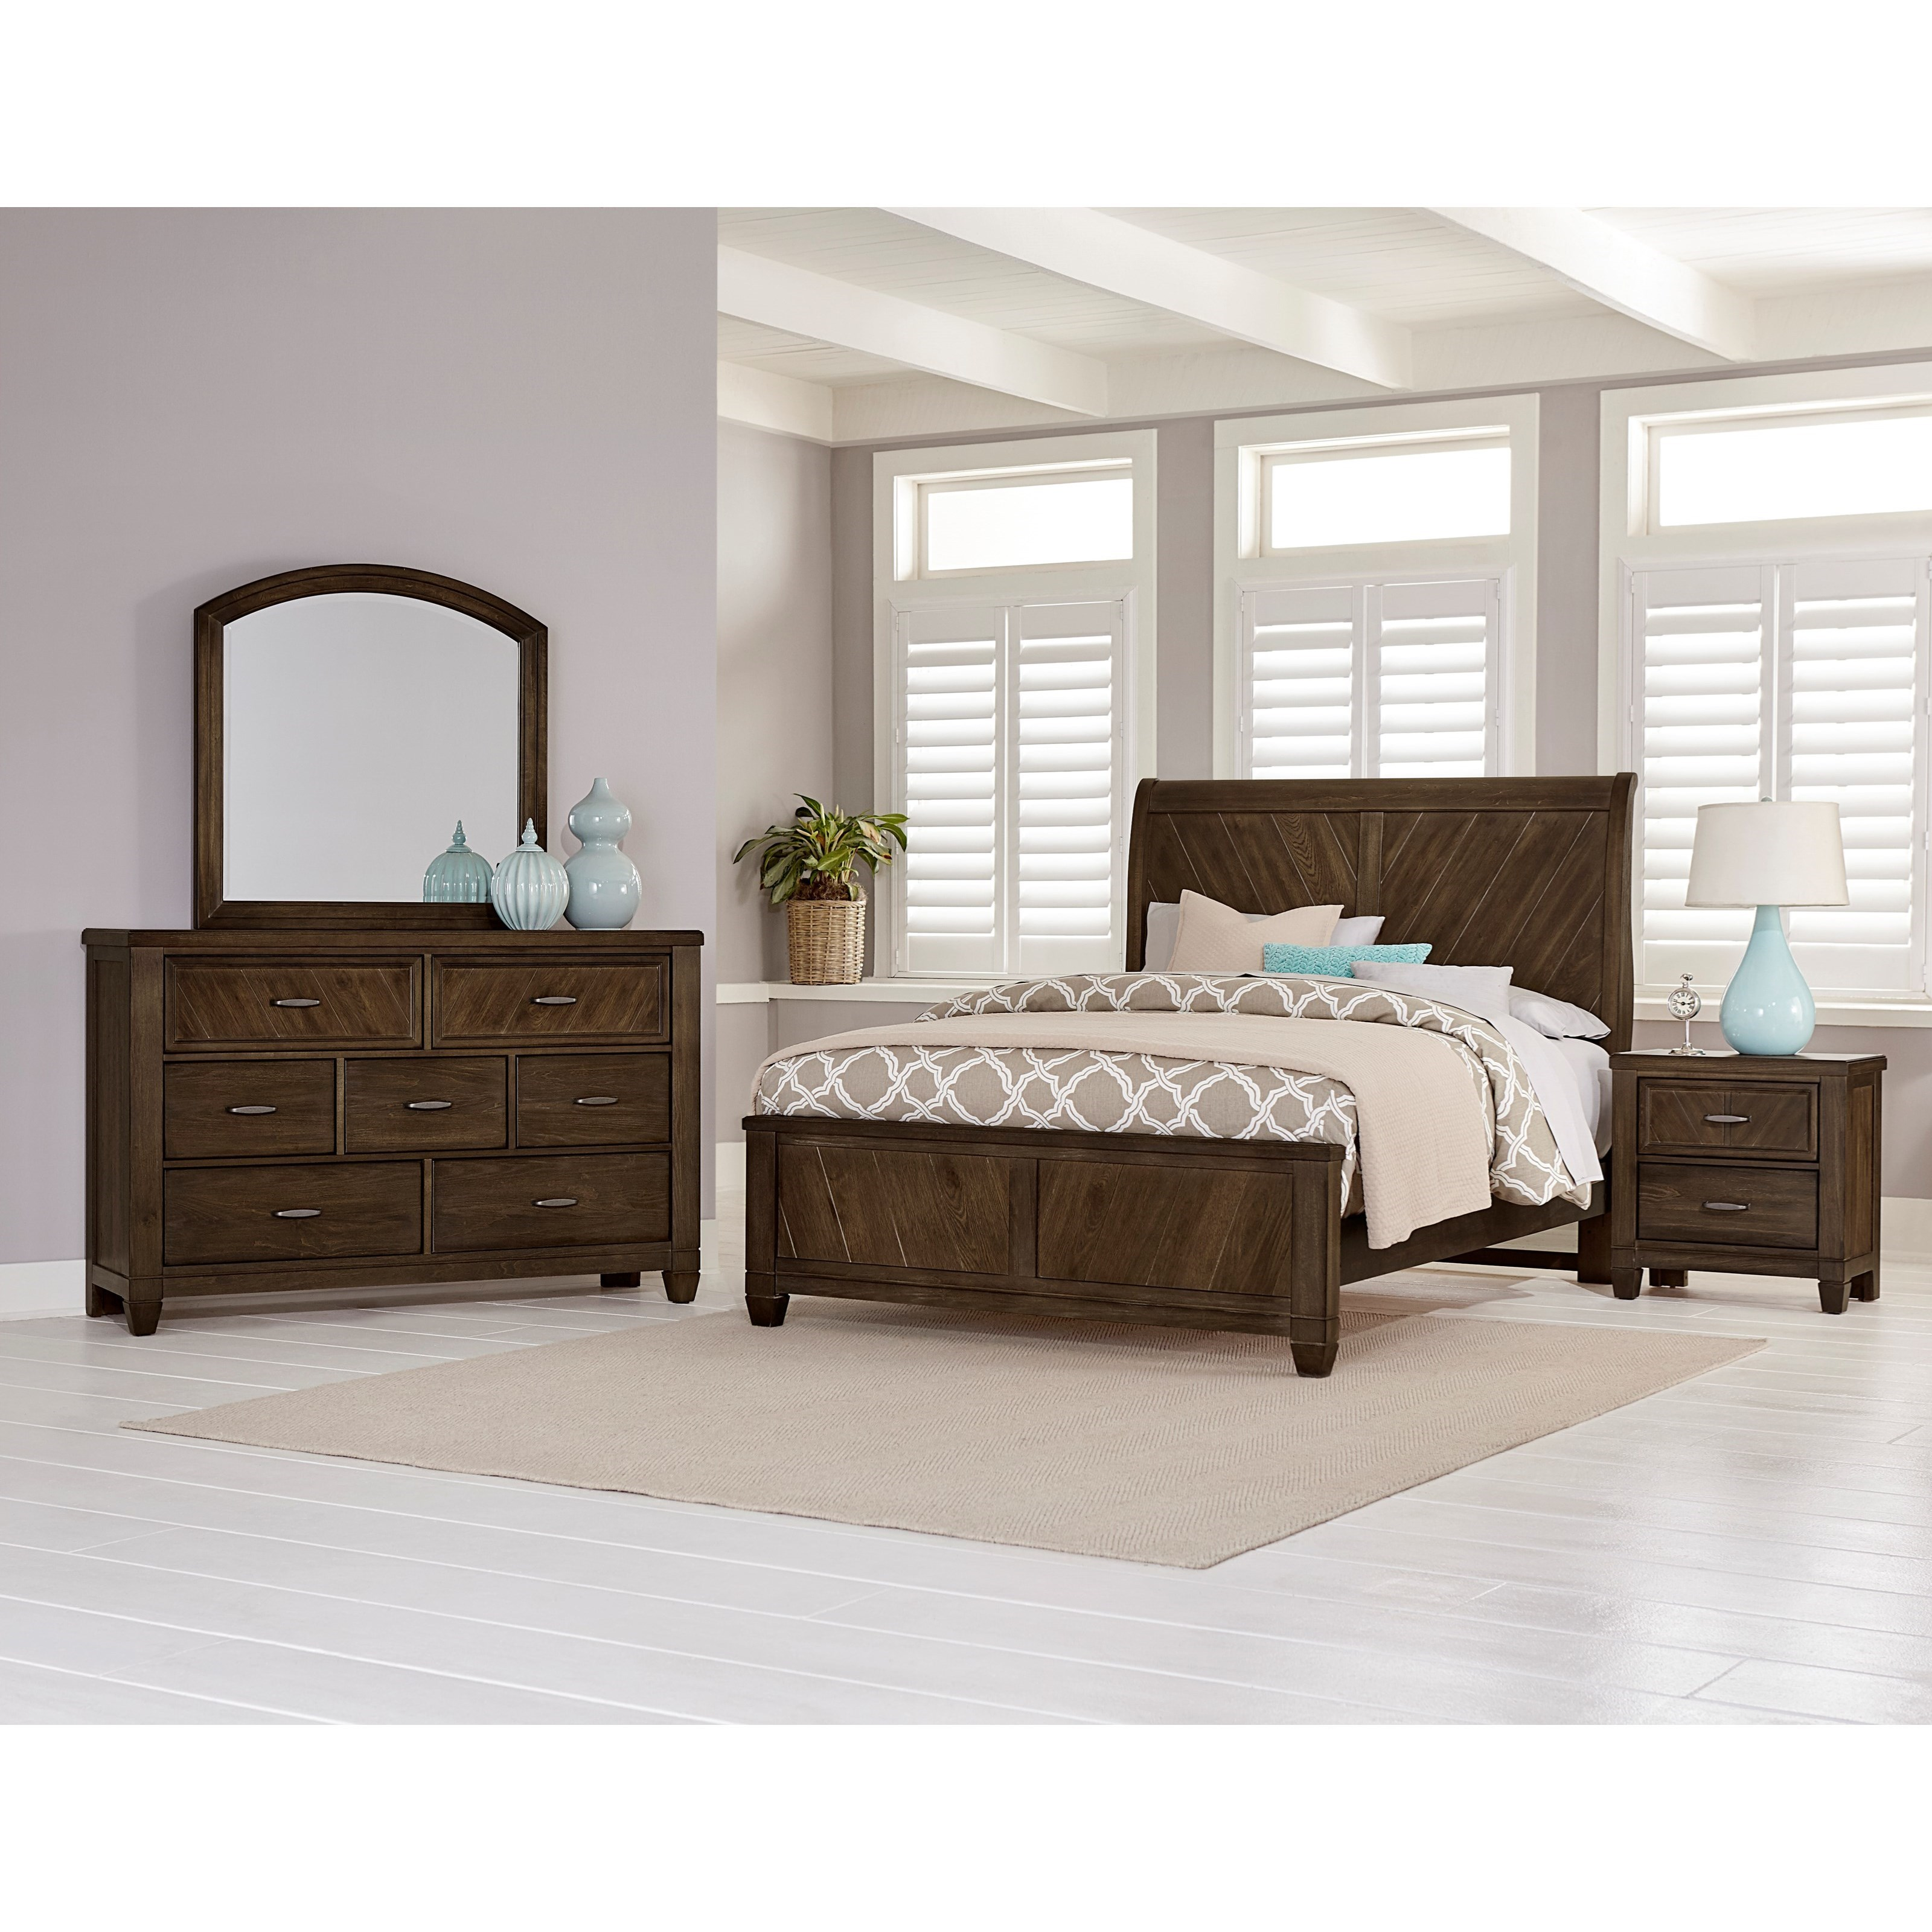 vaughan bassett rustic cottage queen bedroom group prime brothers rh primebrothers com rustic cottage style furniture rustic cottage furniture canada